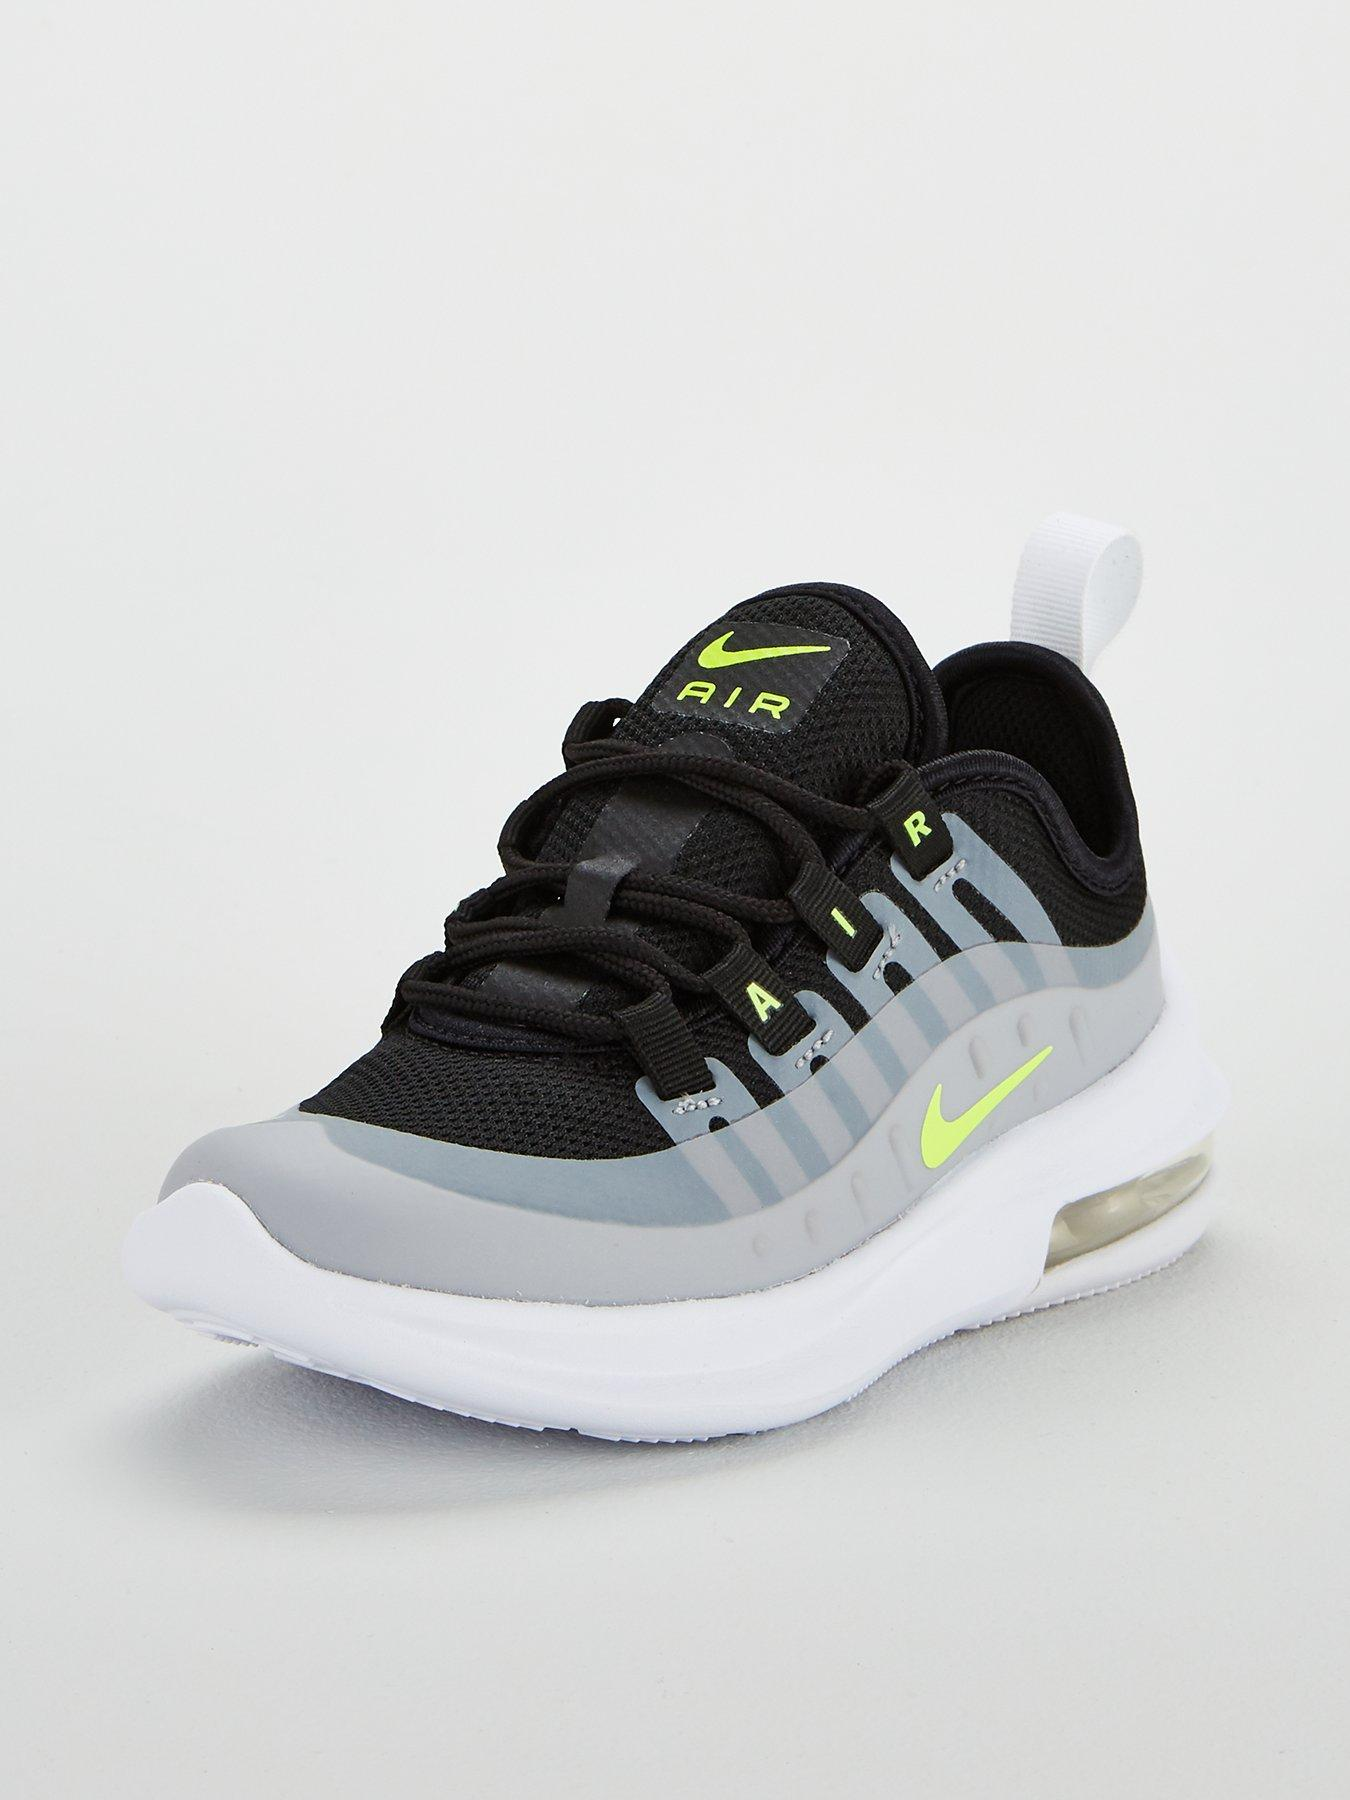 4d5cf7a819 ... pink womens 2016 running shoes air max and 83d5f af22d; discount code  for nike air max axis childrens trainer grey black volt 024c5 2d755